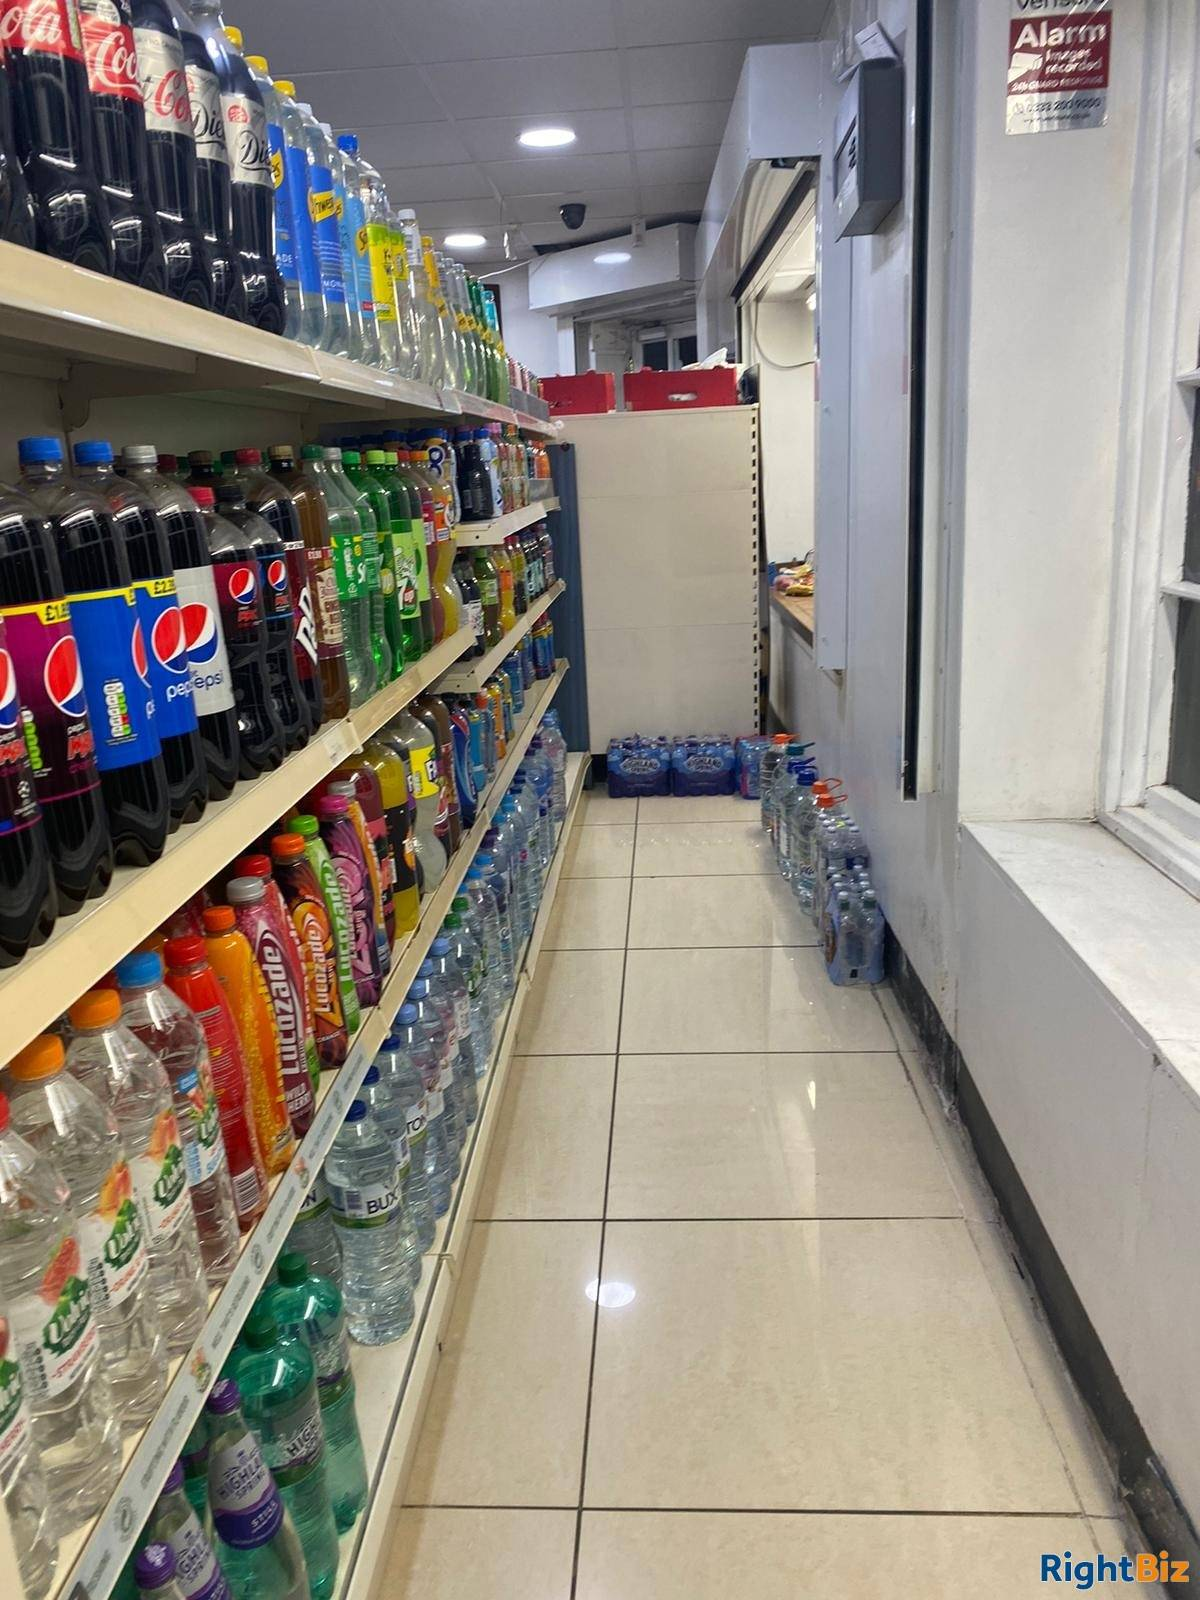 Convenient Store For sale in Slough Leasehold - Image 2